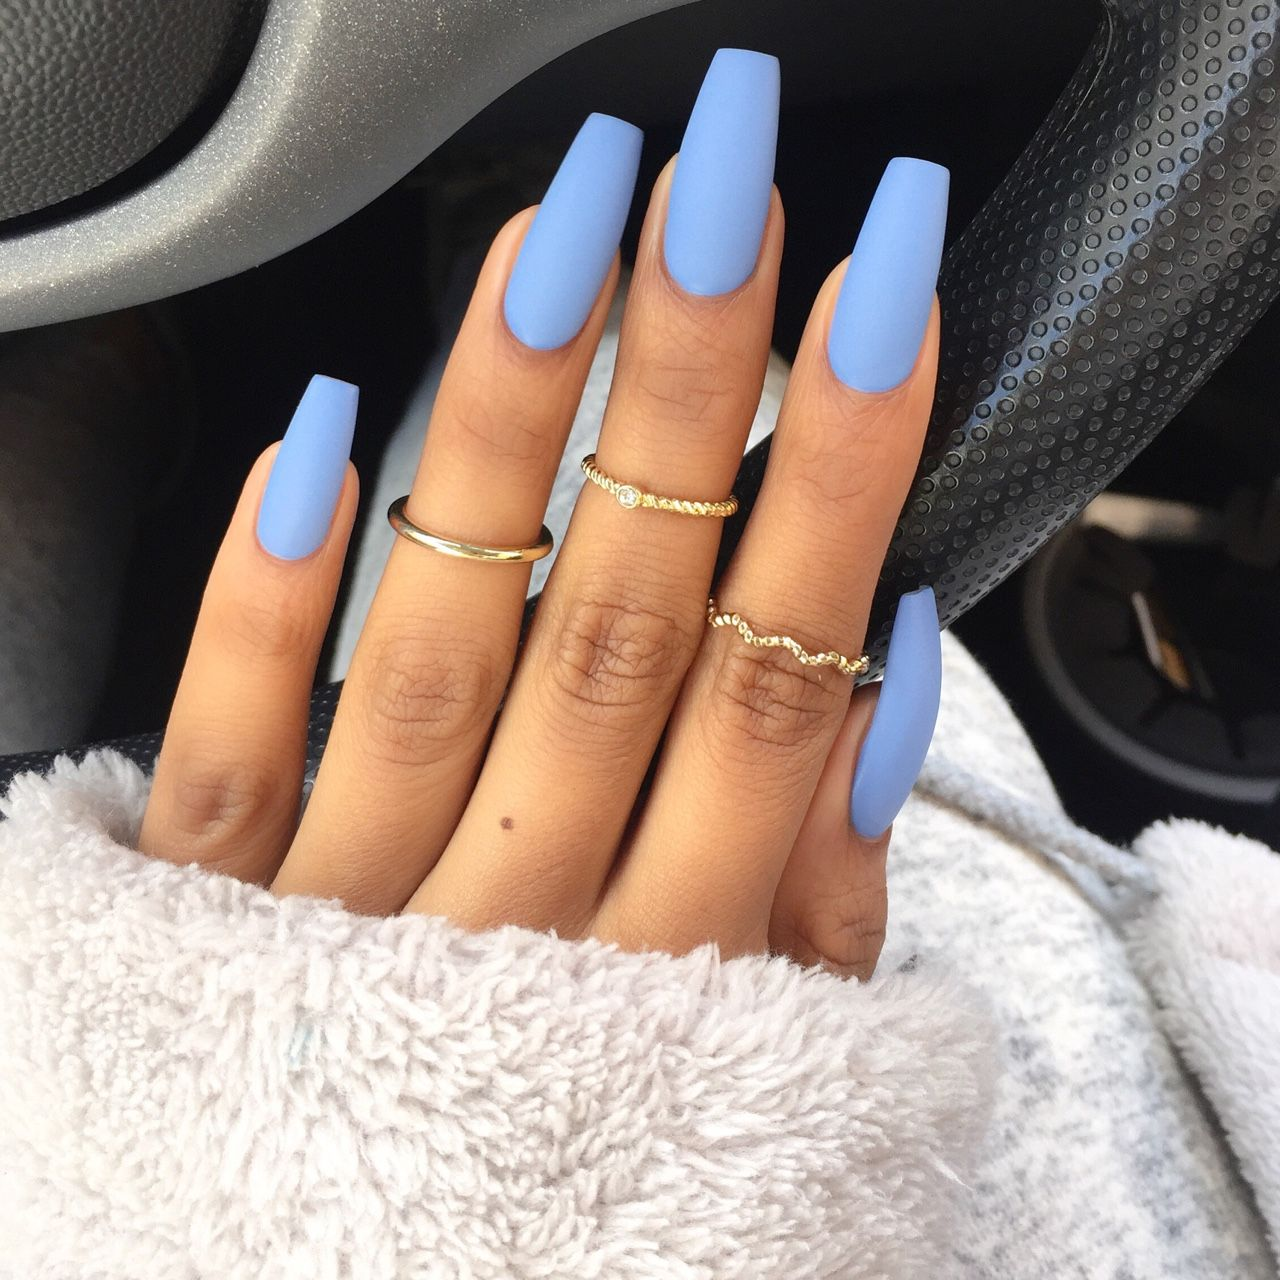 Pin by Asfaaltaf Salim on nice | Pinterest | Make up, Nail inspo and ...